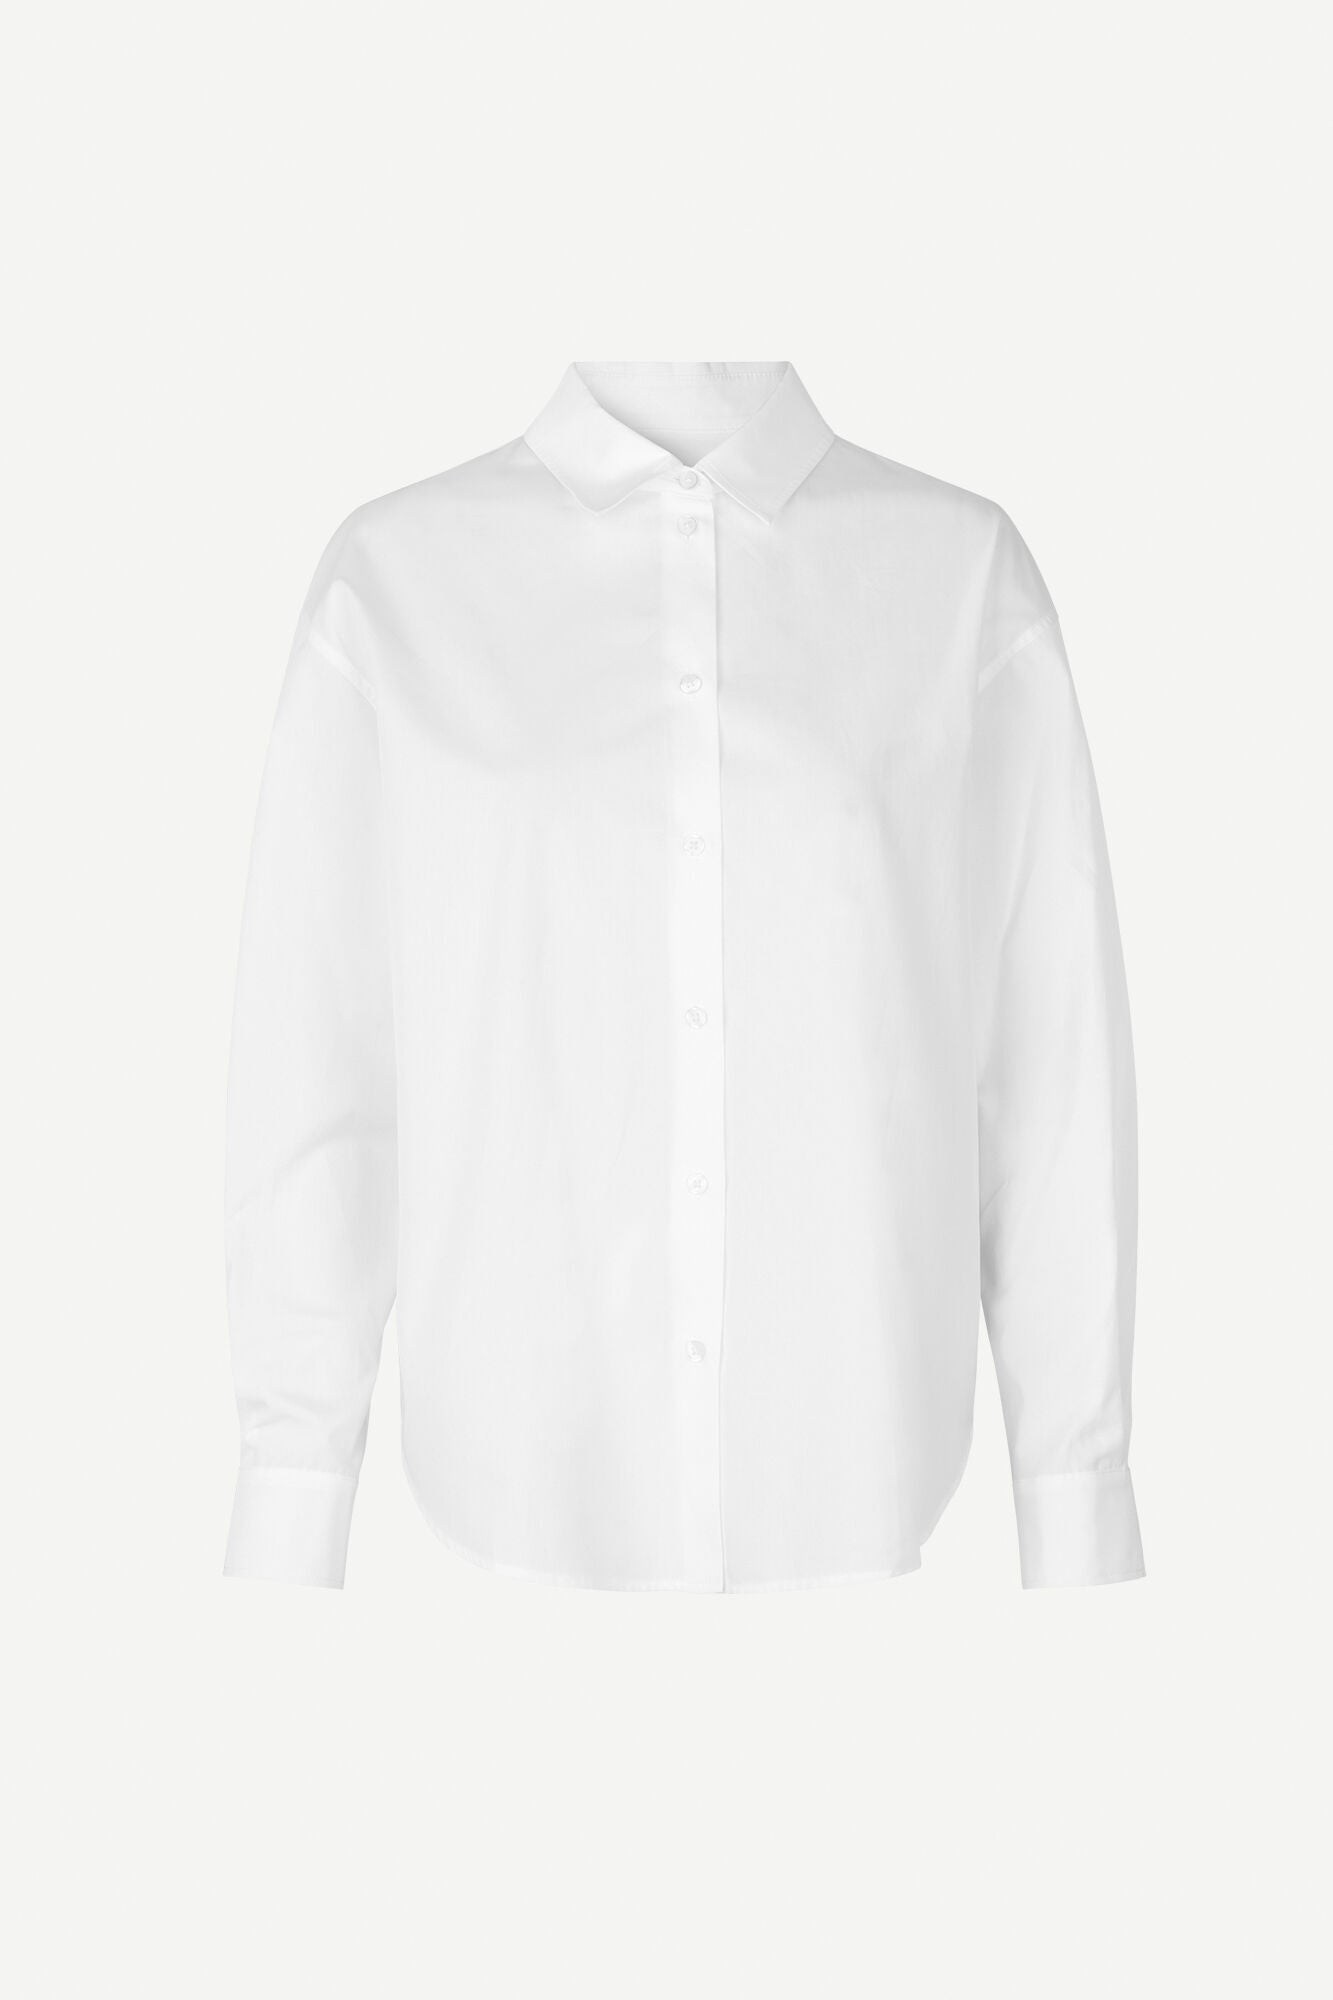 DROPPED SHOULDER COTTON SHIRT IN WHITE